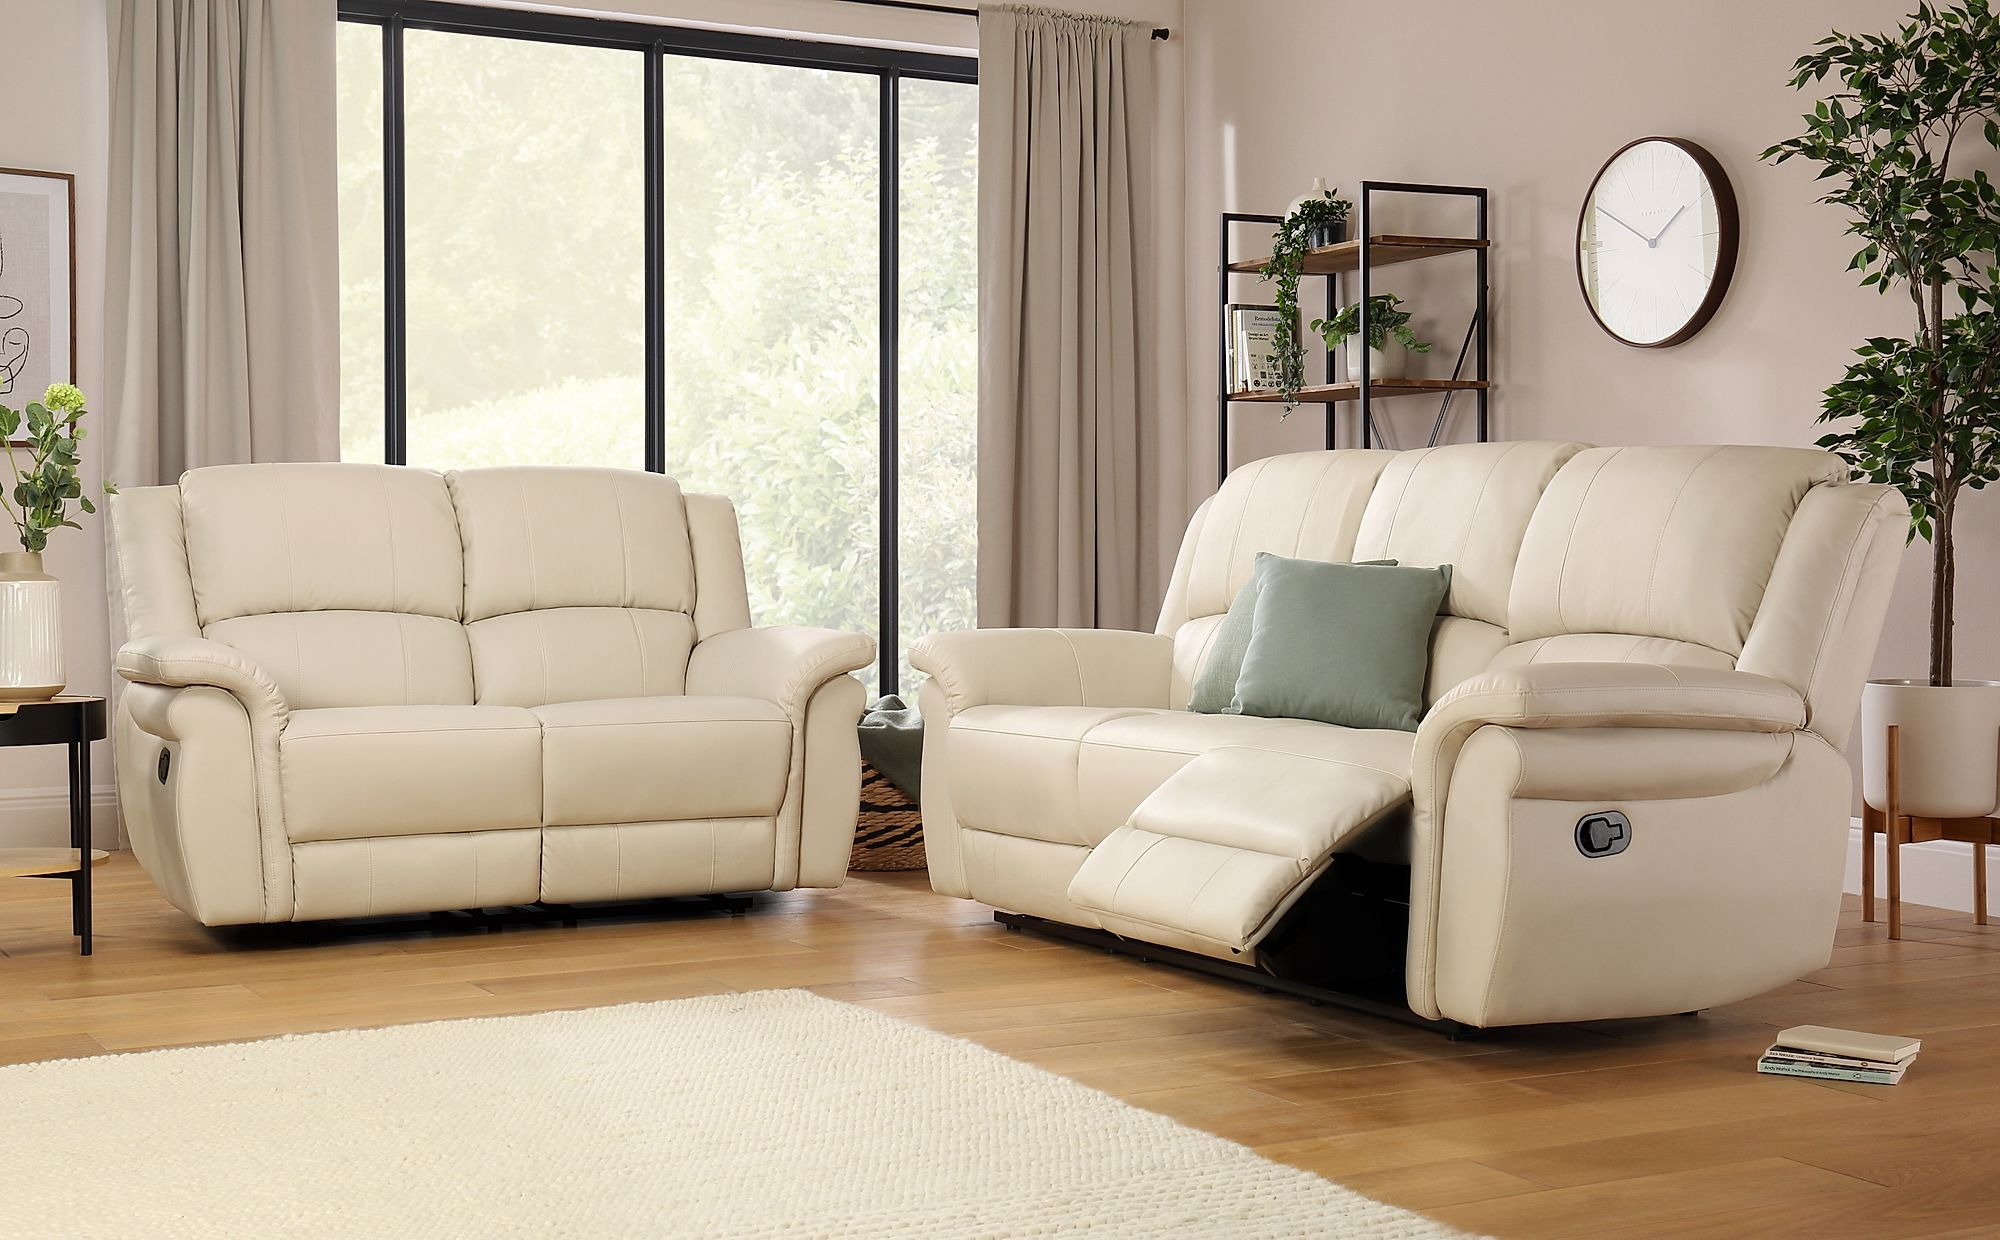 Lombard Ivory Leather 3+2 Seater Recliner Sofa Set ...